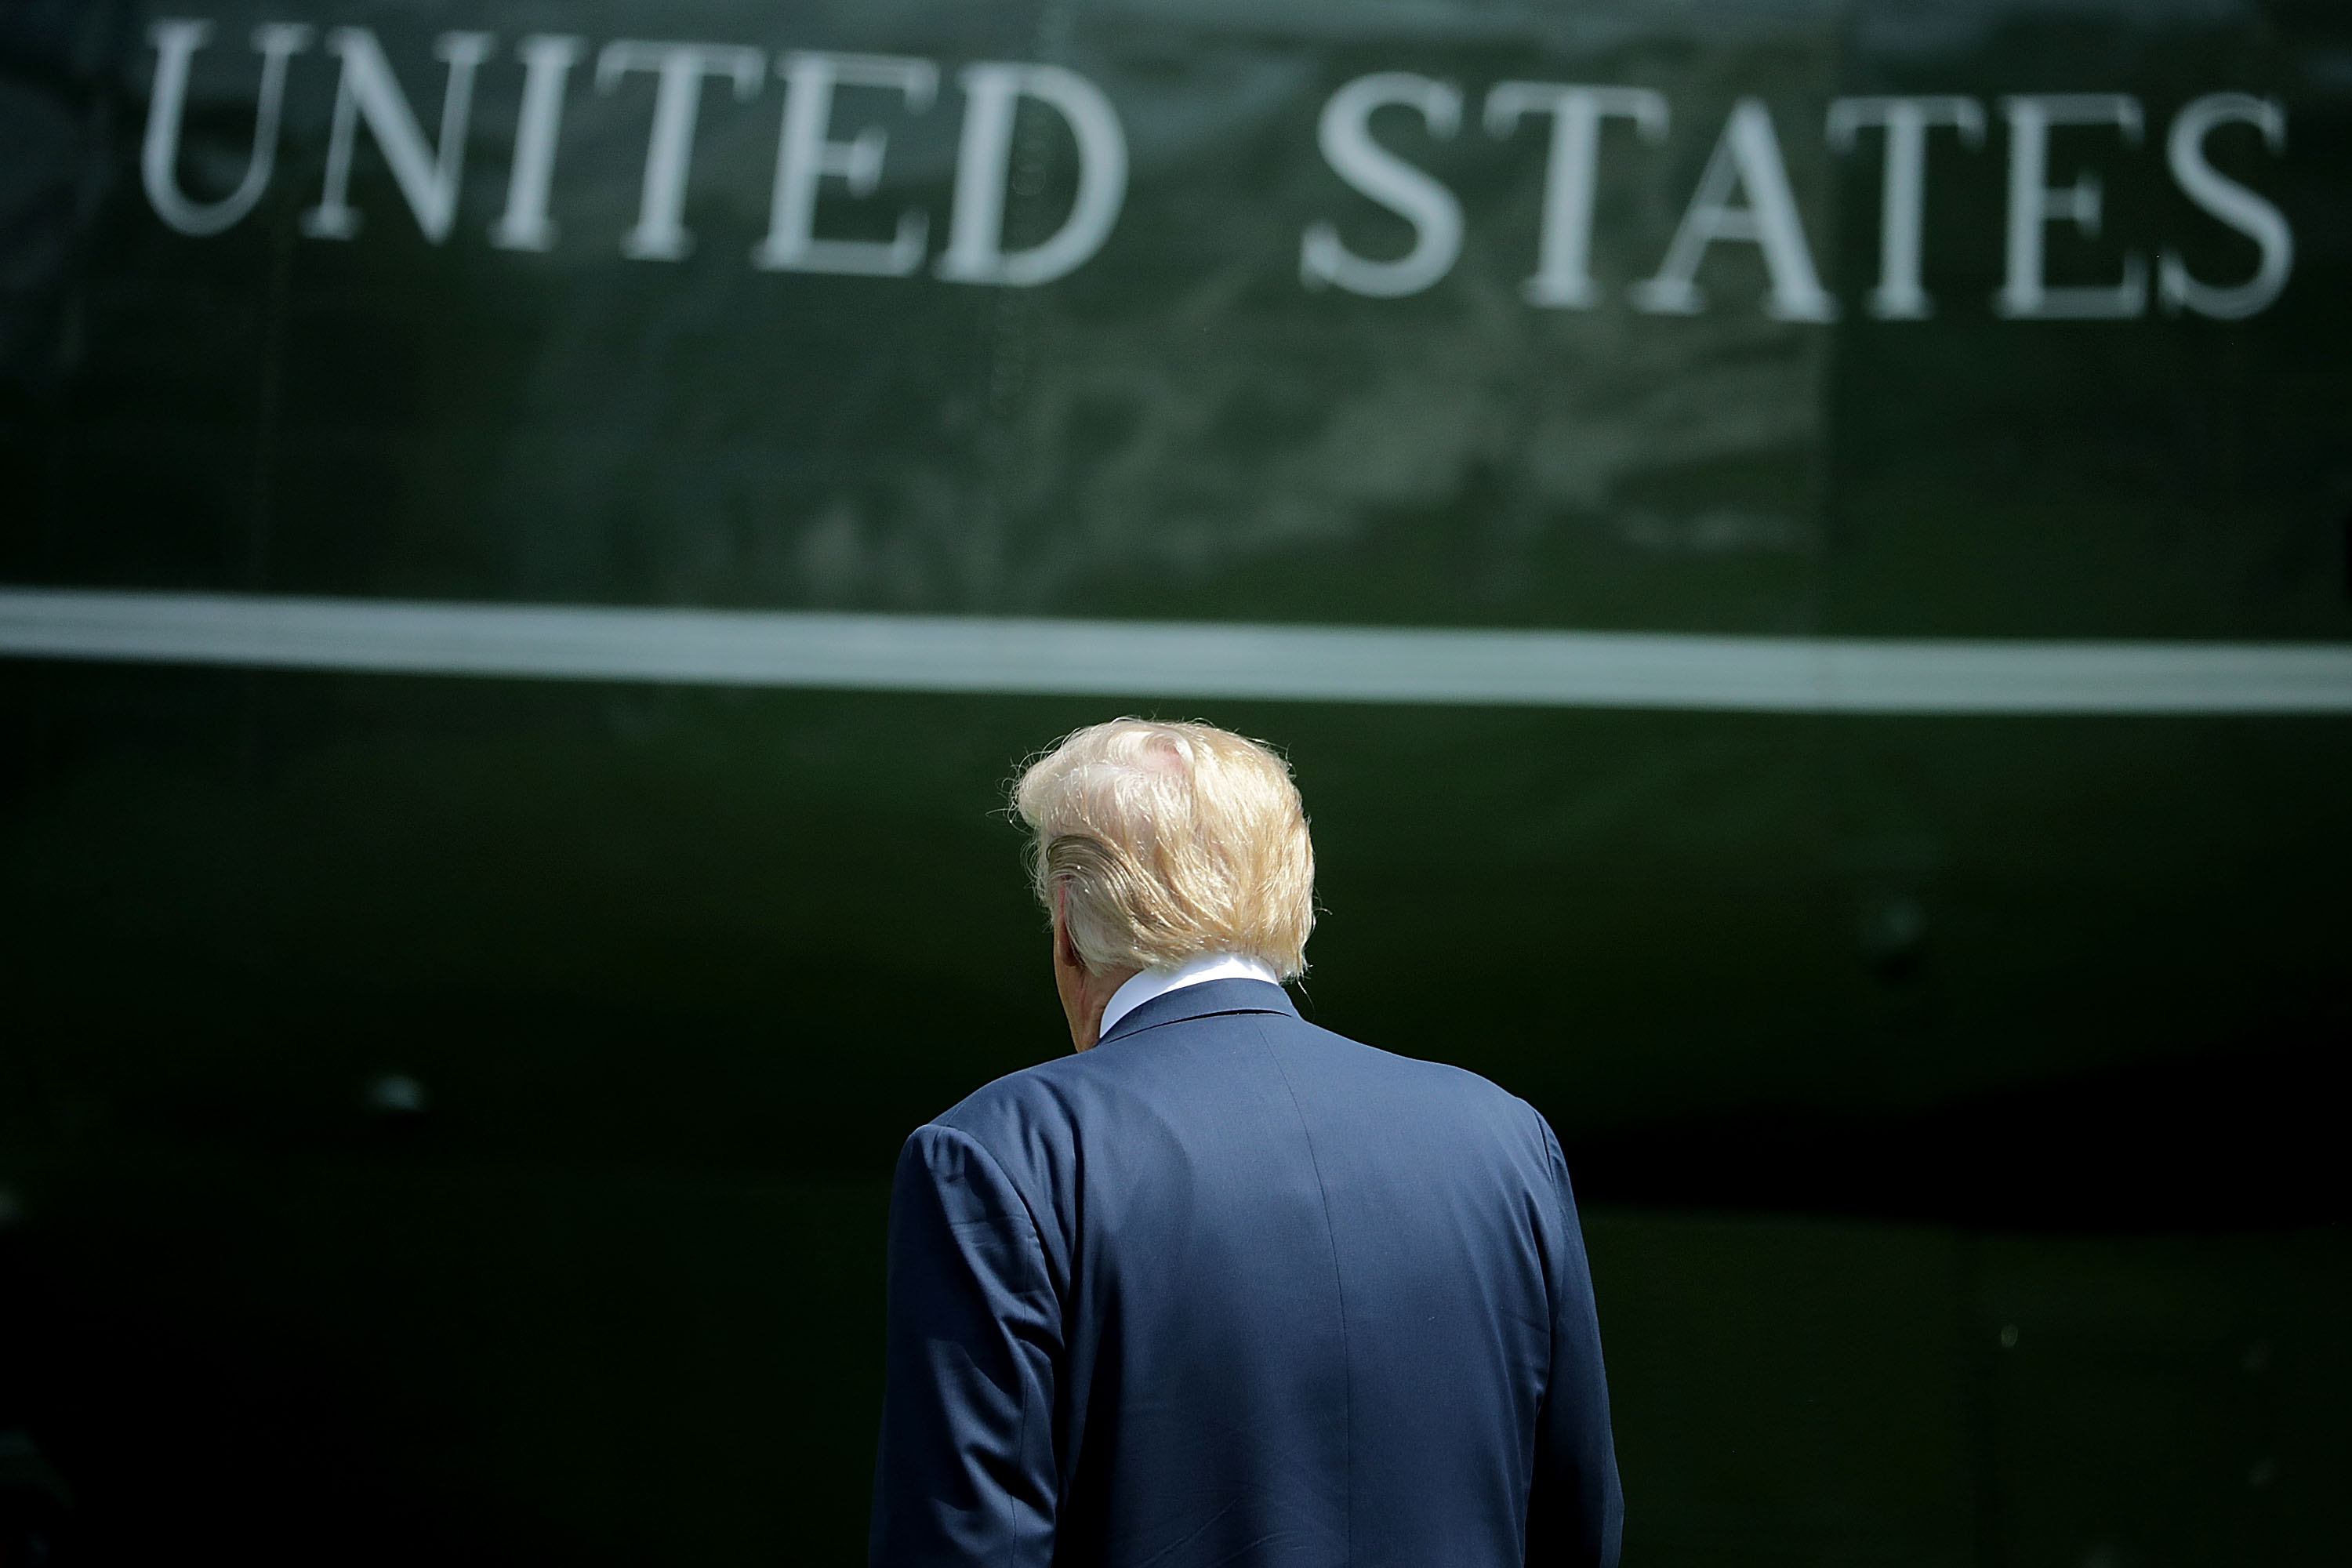 U.S. President Donald Trump walks across the South Lawn before boarding Marine One and departing the White House June 1, 2018 in Washington, D.C.